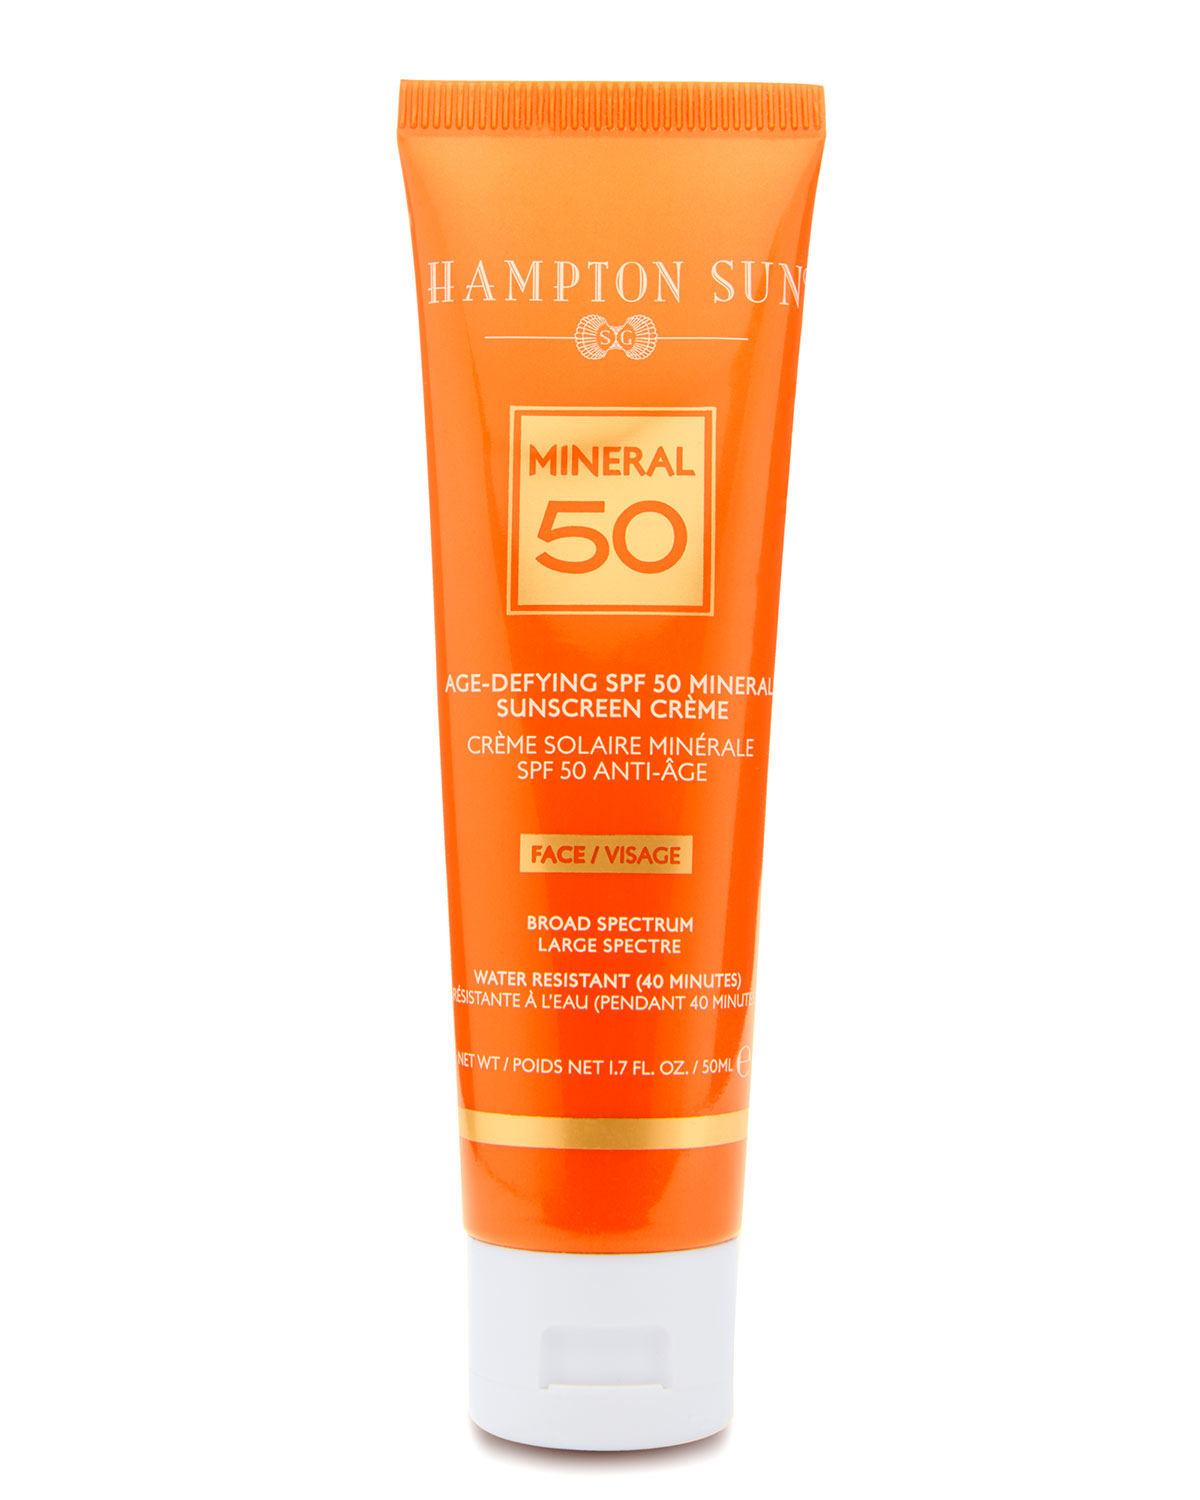 Hampton Sun Age-Defying Mineral Crème Sunscreen for FACE SPF 50